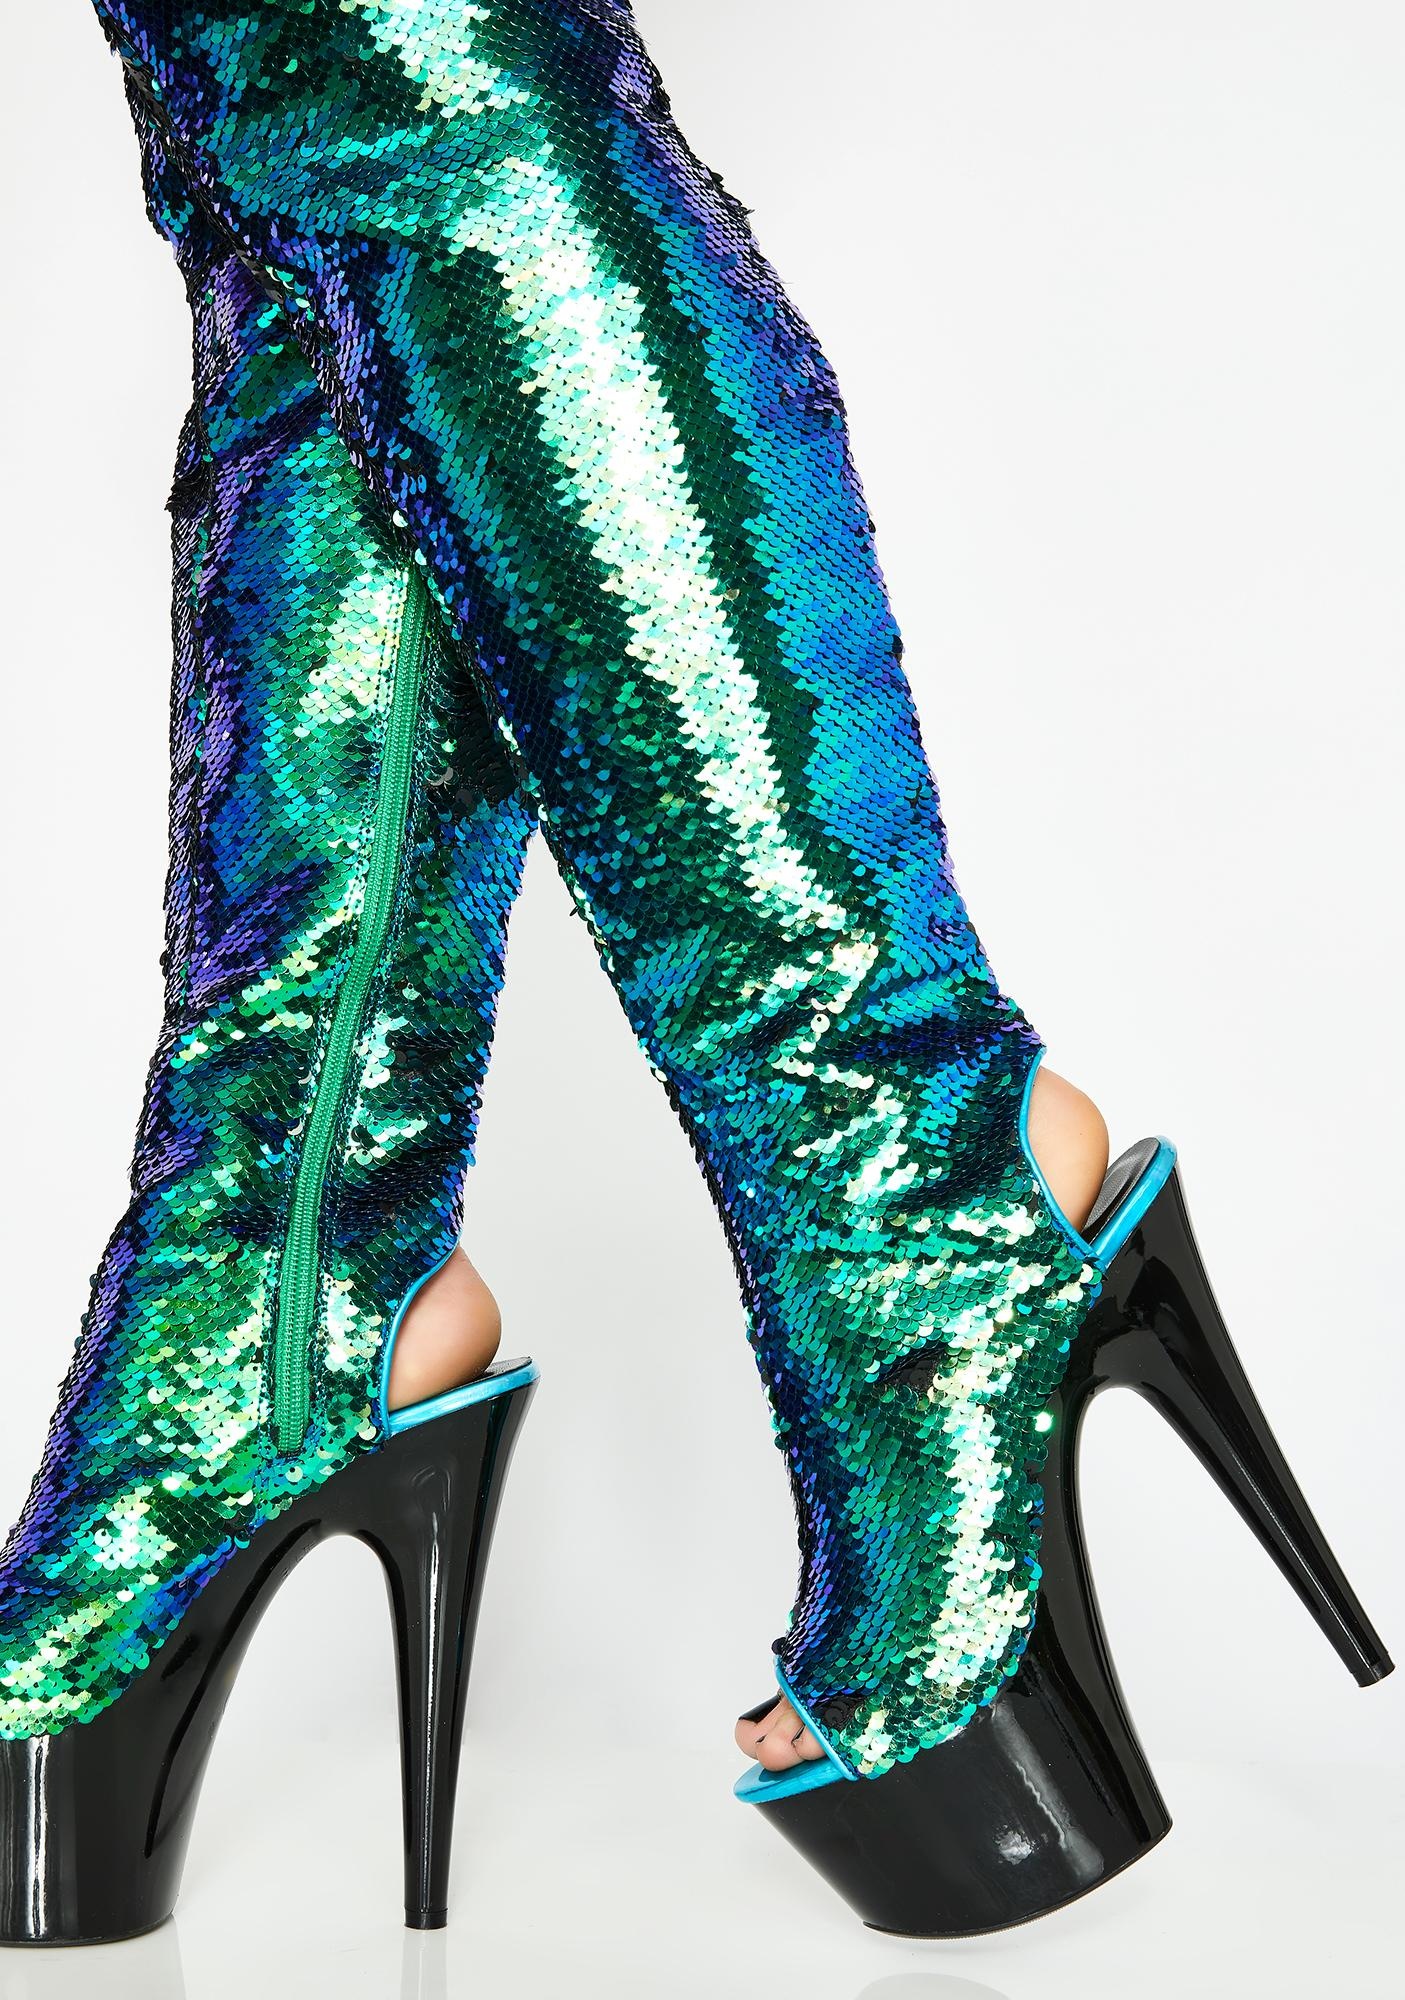 Outer Space Diva Thigh High Heels